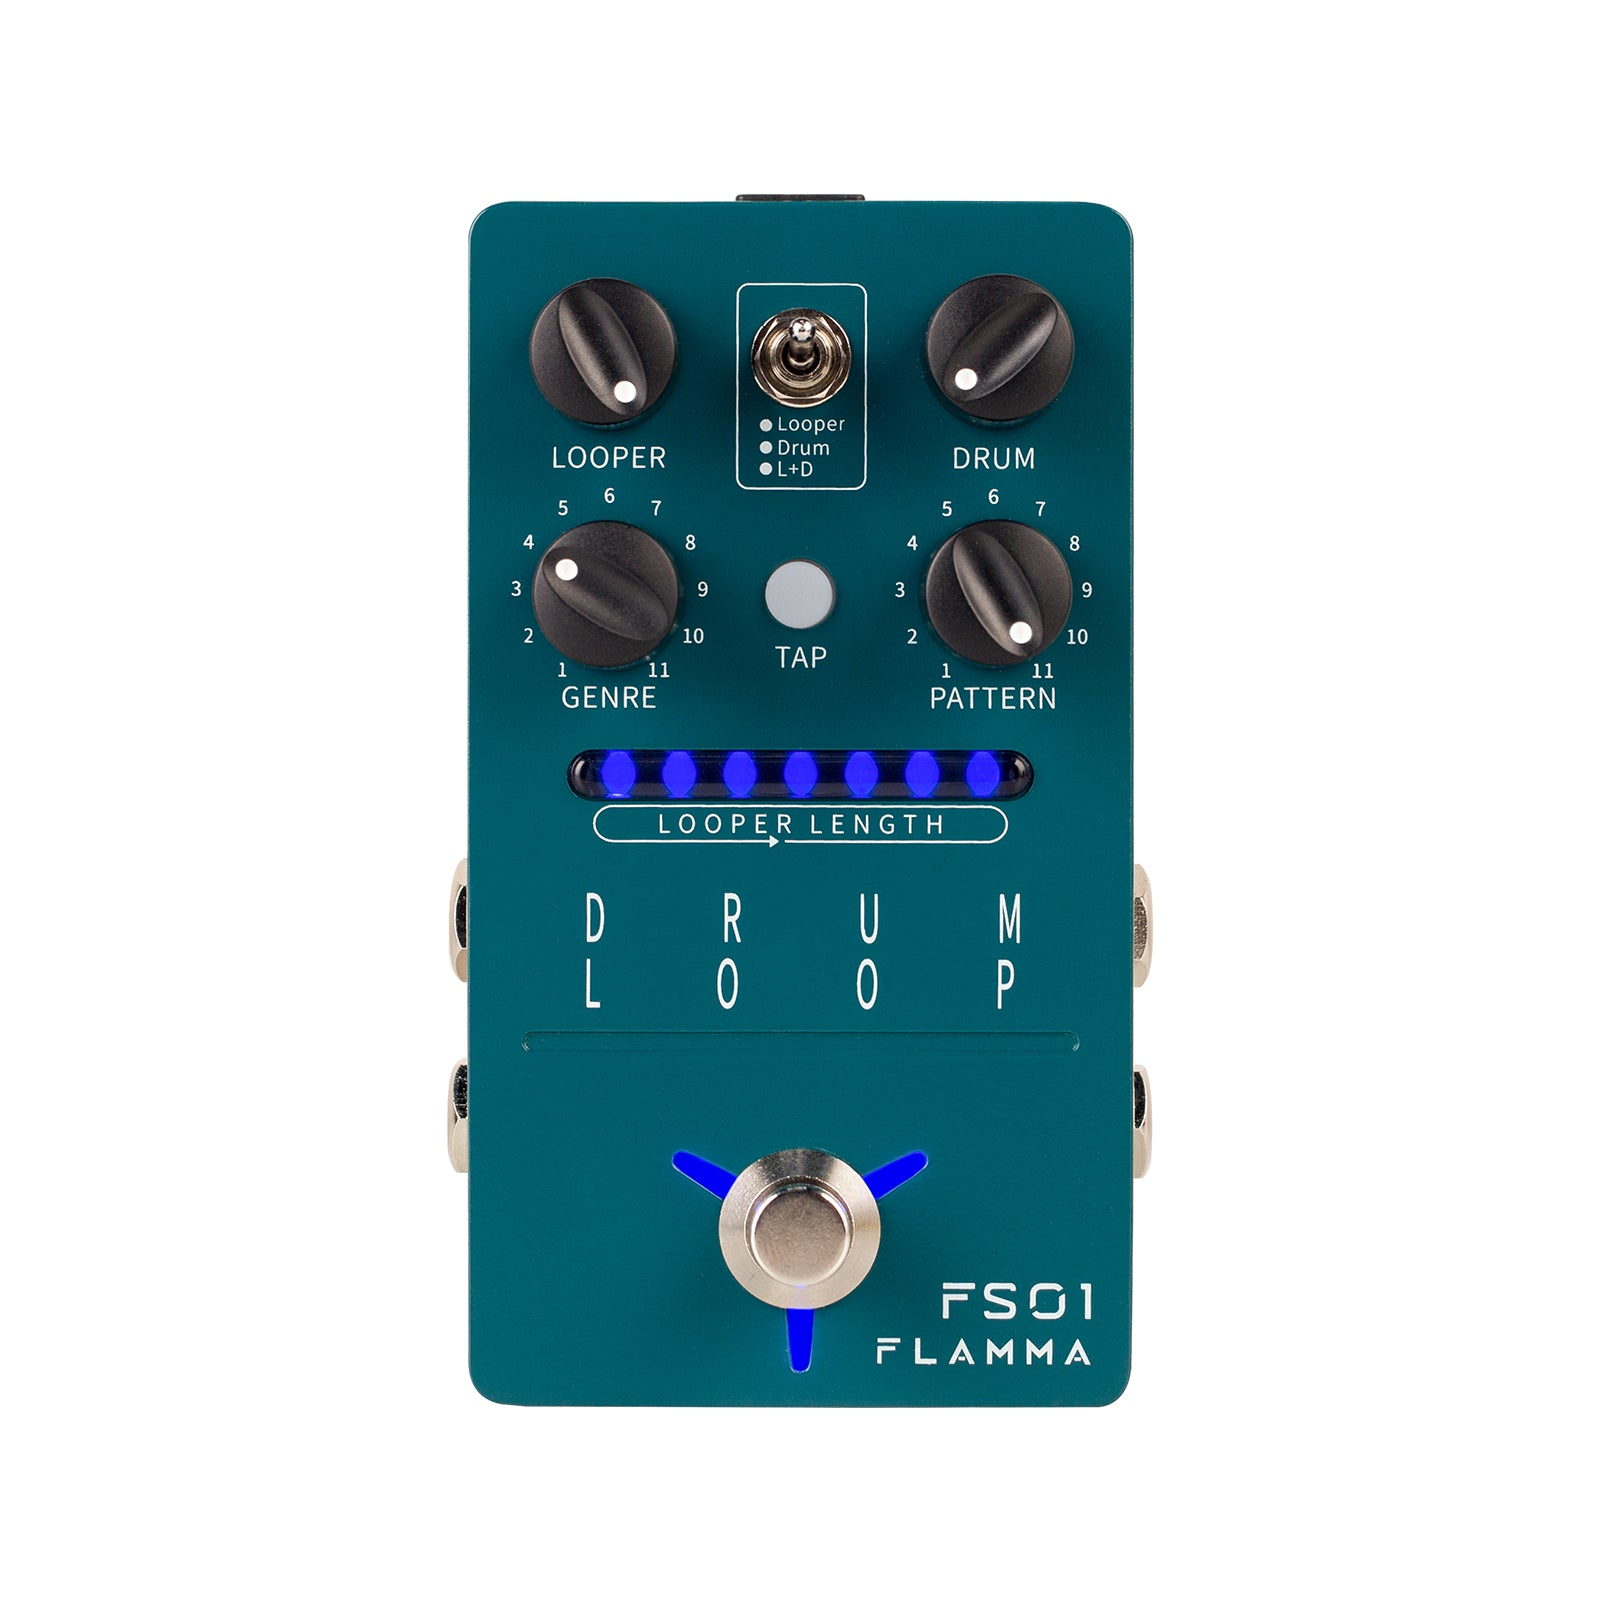 FLAMMA FS01 Drum Machine & Phrase Loop Pedal with 11 Groove Styles and 20 min Loopers